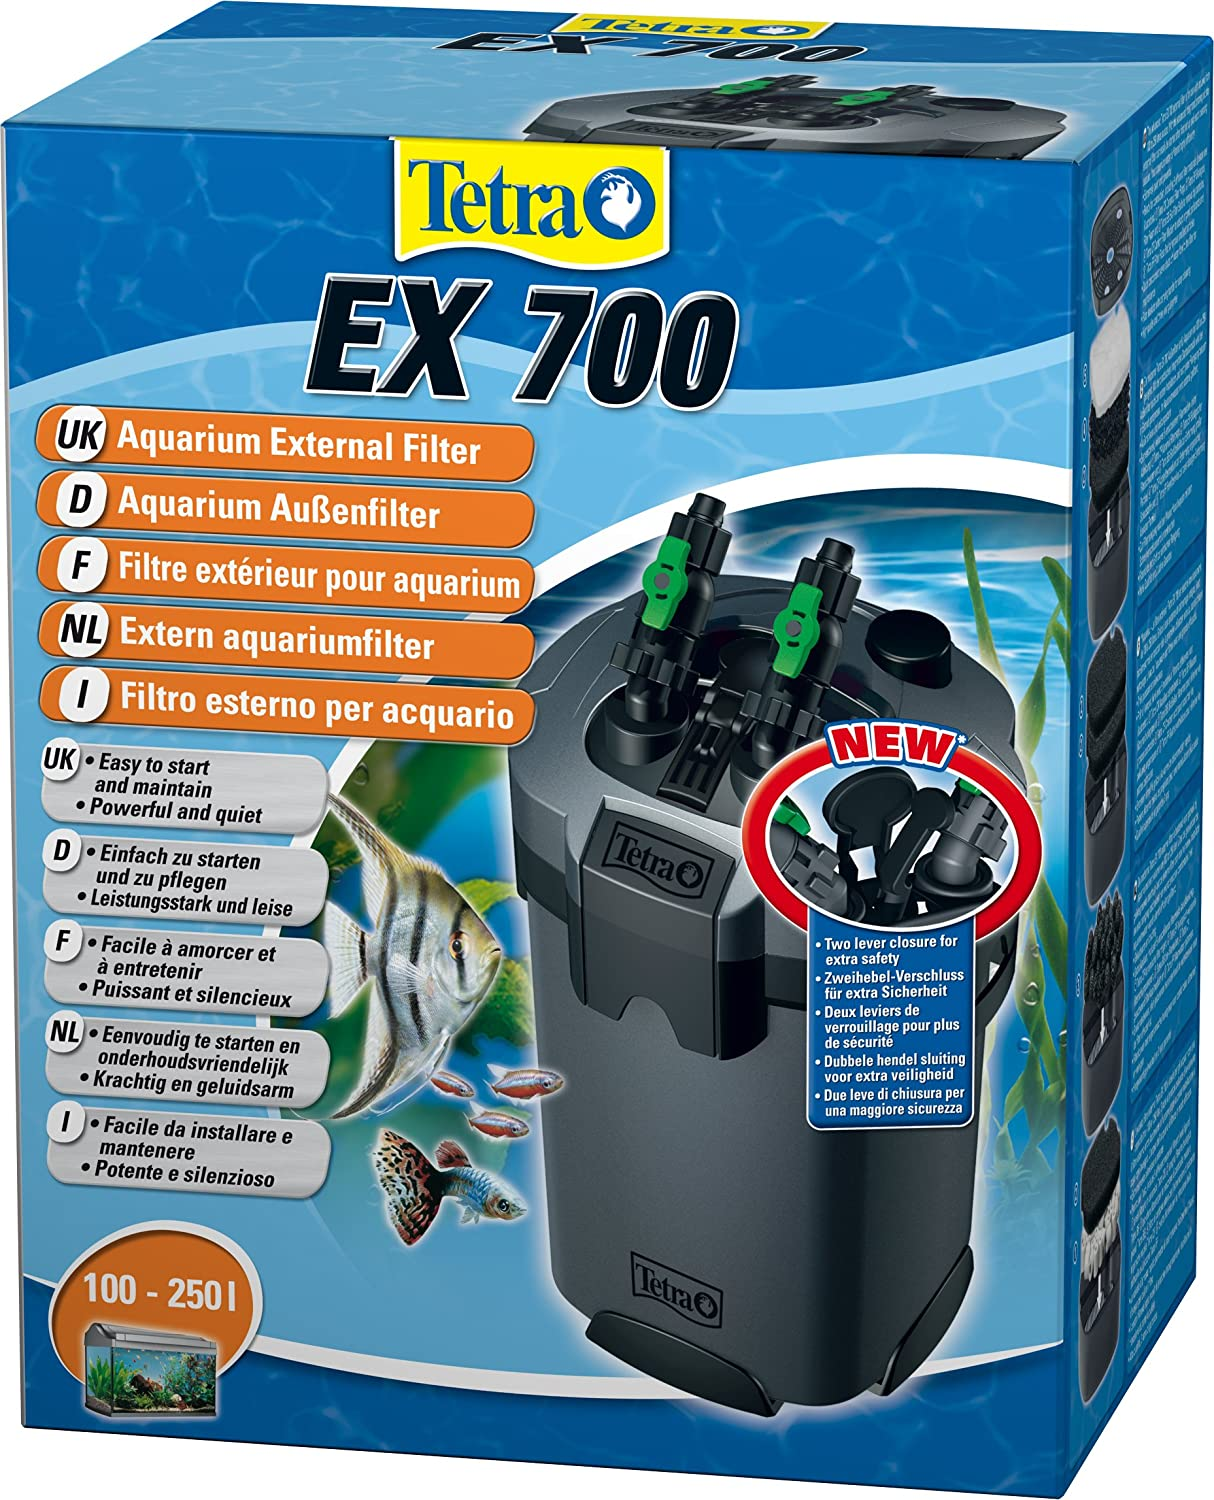 91ri1lf9JjL._SL1500_ tetra tec ex 700 external filter amazon co uk pet supplies  at gsmportal.co